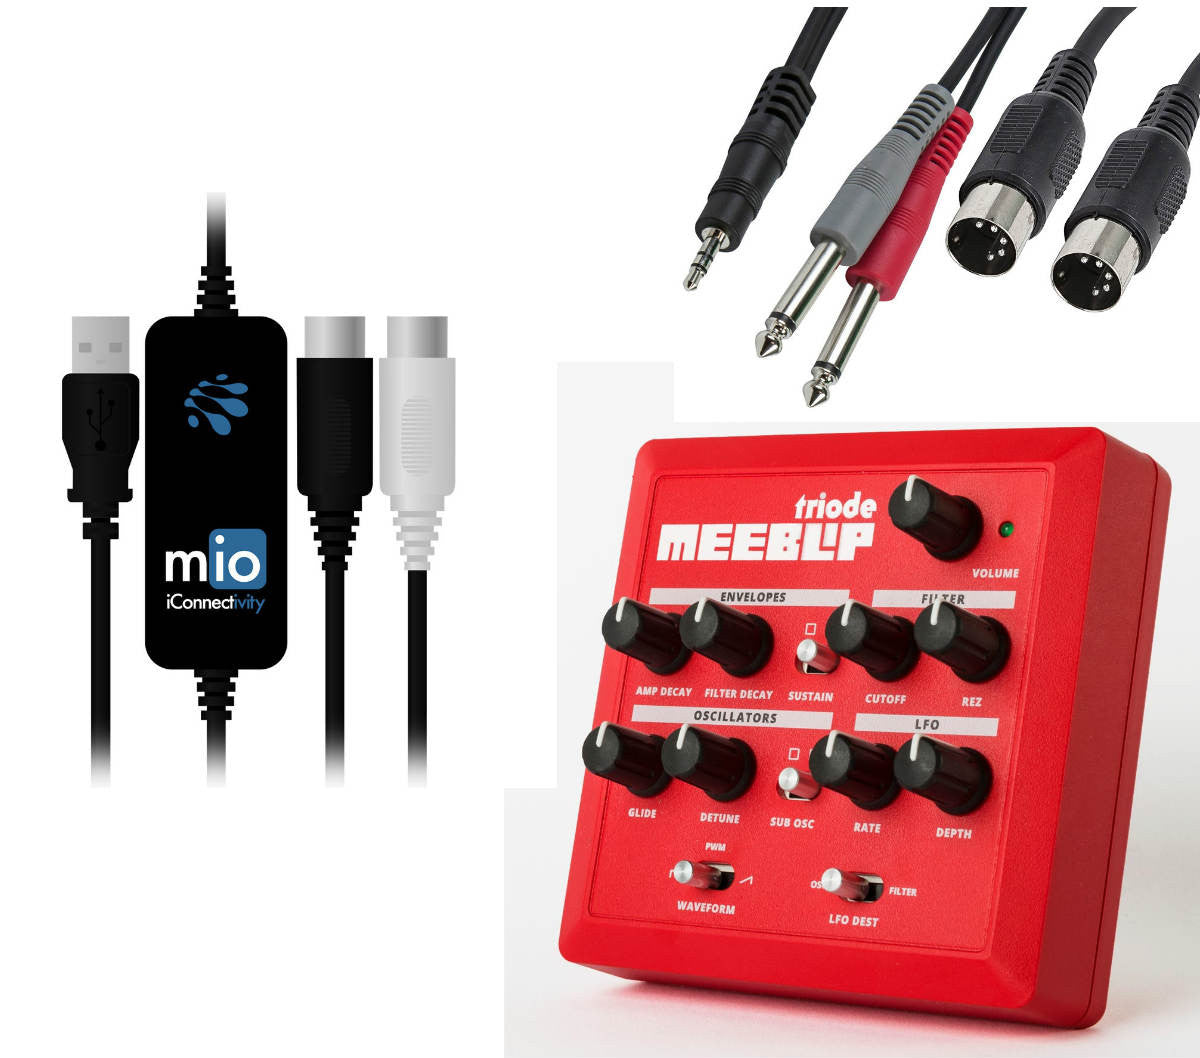 Bundle: triode synth + mio USB MIDI interface + cables